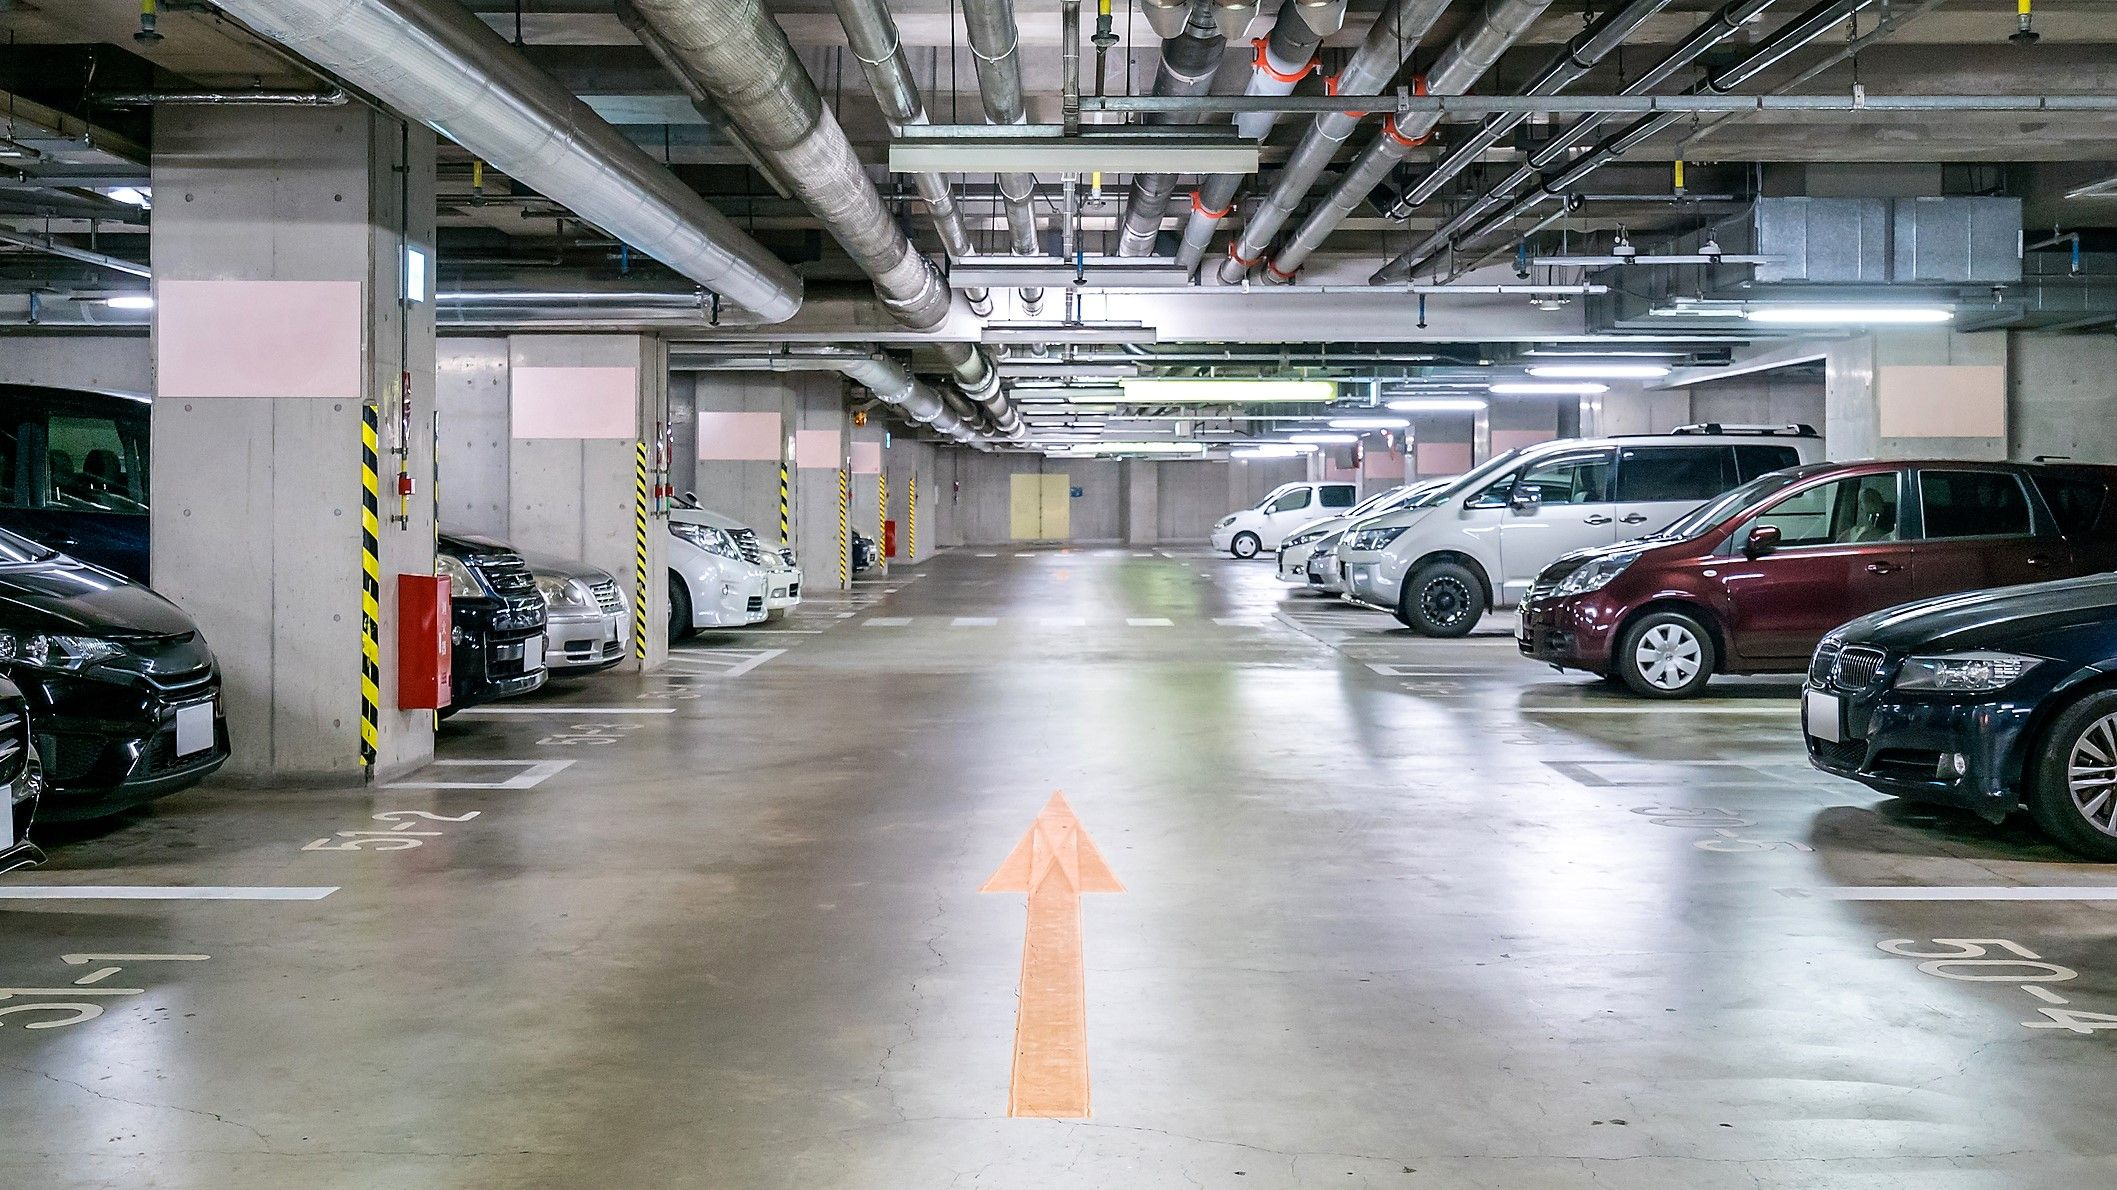 Parking costs are rising, so here are 5 tips to help you save